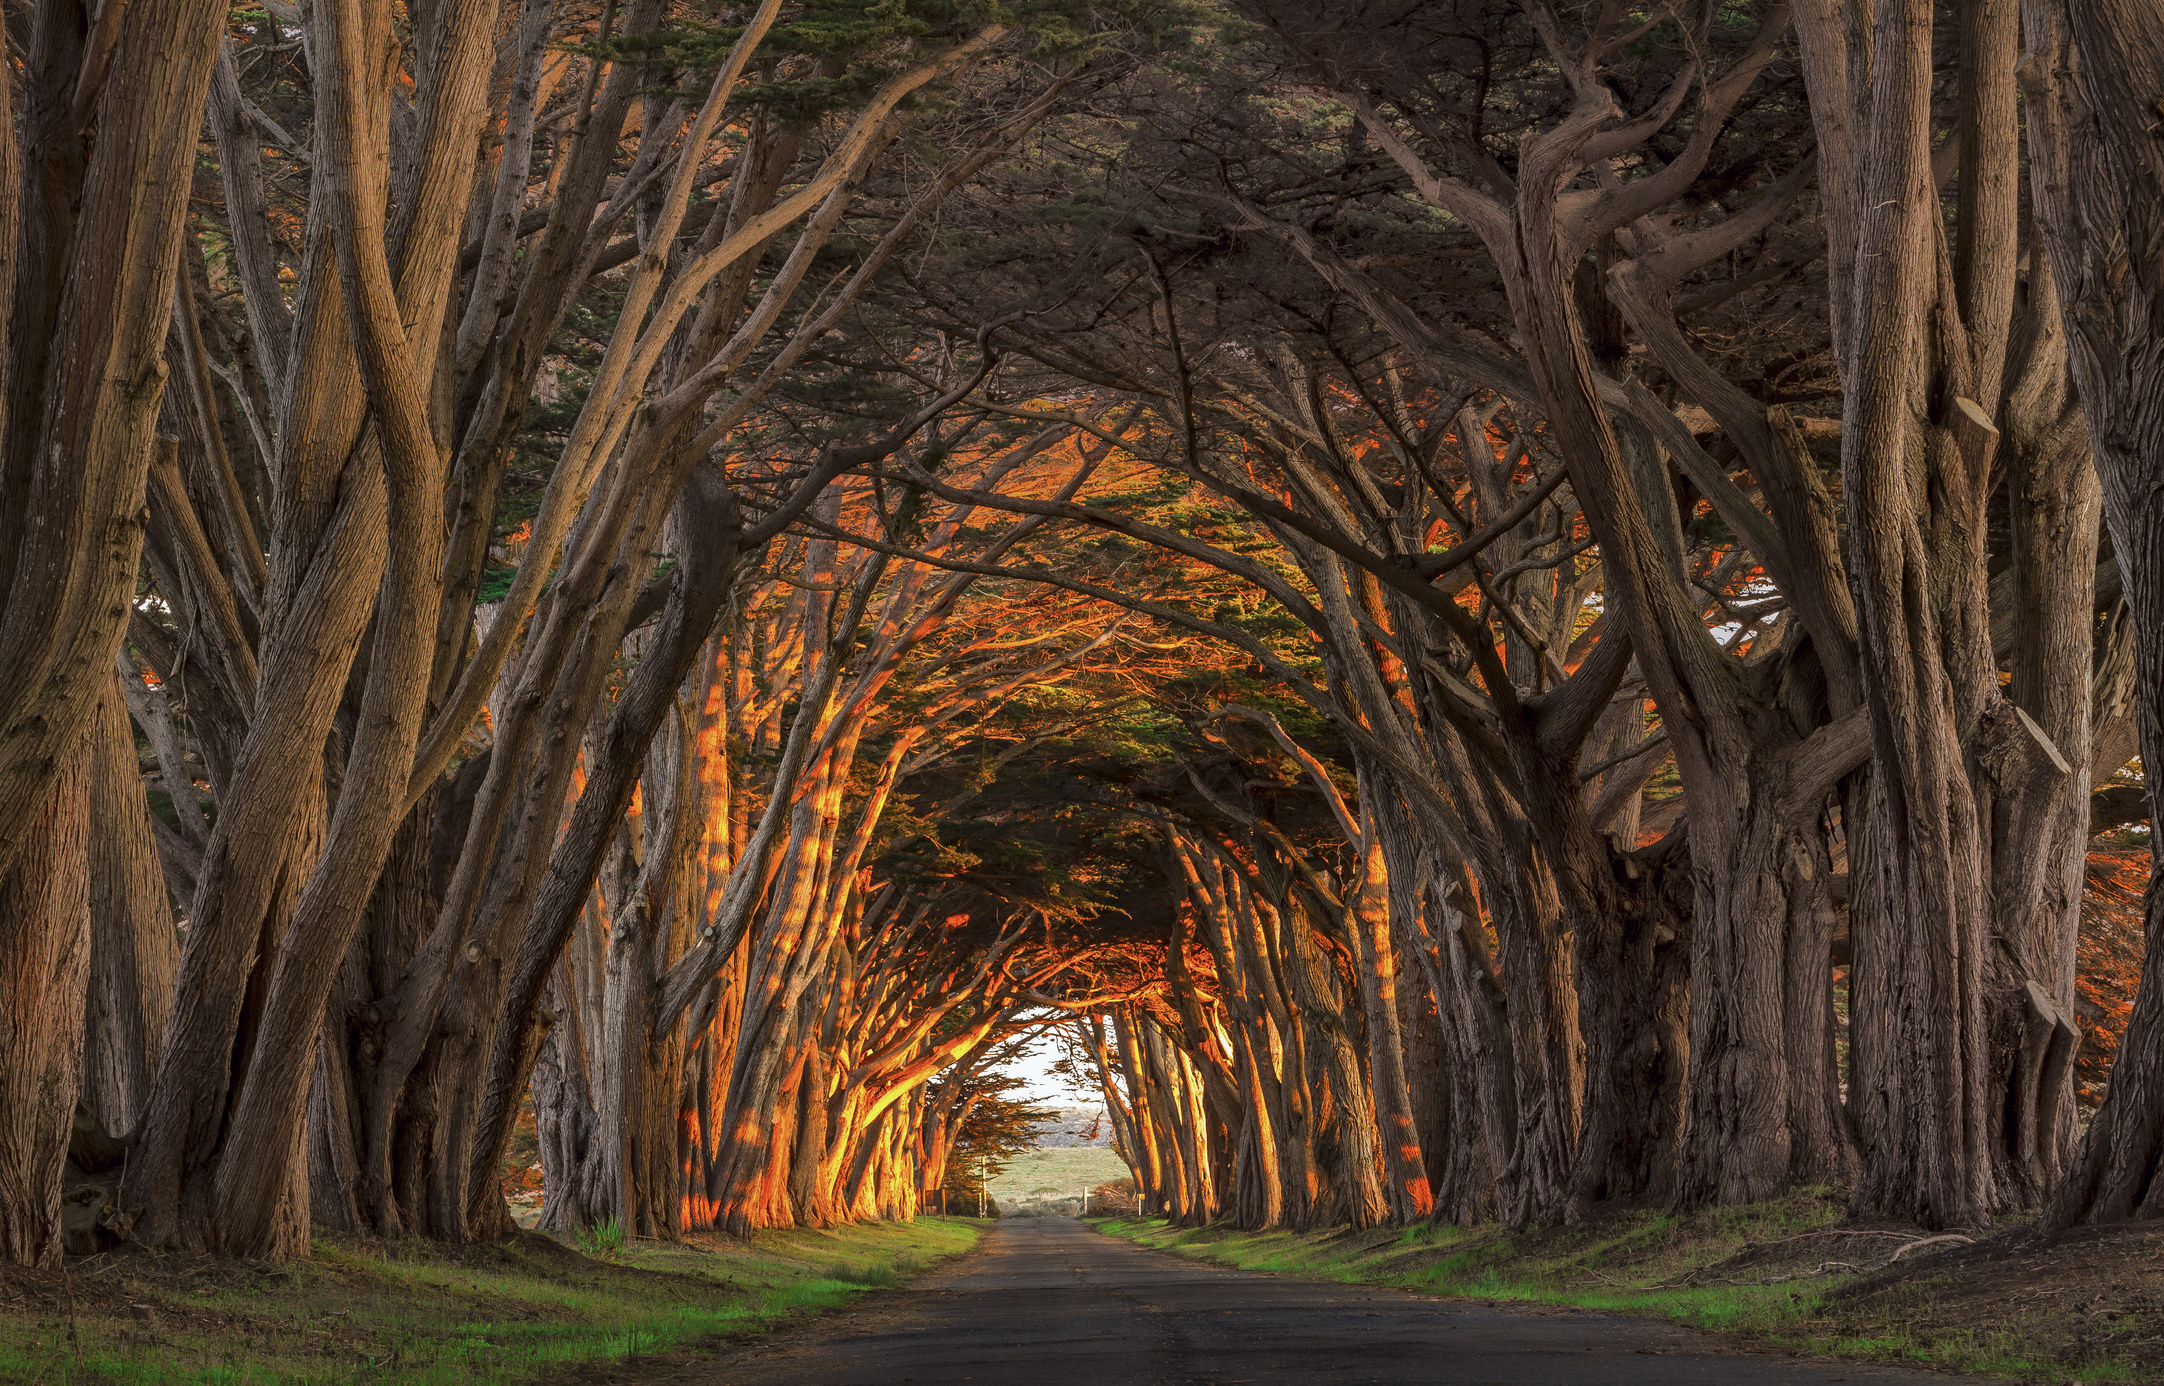 A drive-thru tunnel made of towering cypress trees that curve in.